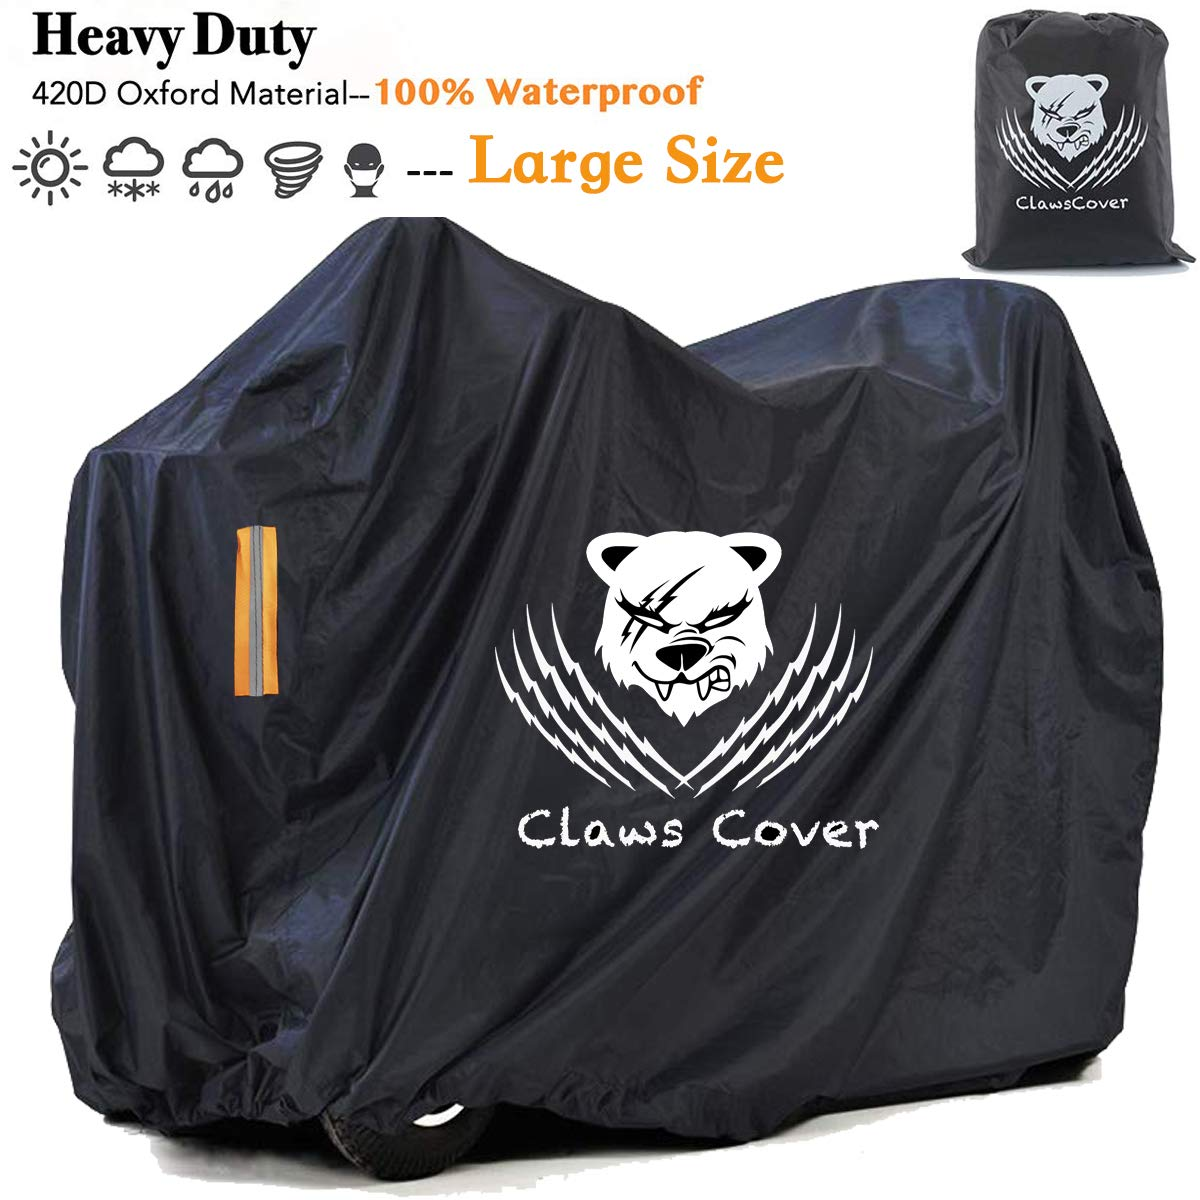 Professional Mobility Scooters Storage Covers with 2 Vents Outdoor,Waterproof & Windproof Wheelchairs Cover Durable All Weather Electric Power Assisted Sun Dust Protector Bags-56L x 26W x 36H Inch by ClawsCover